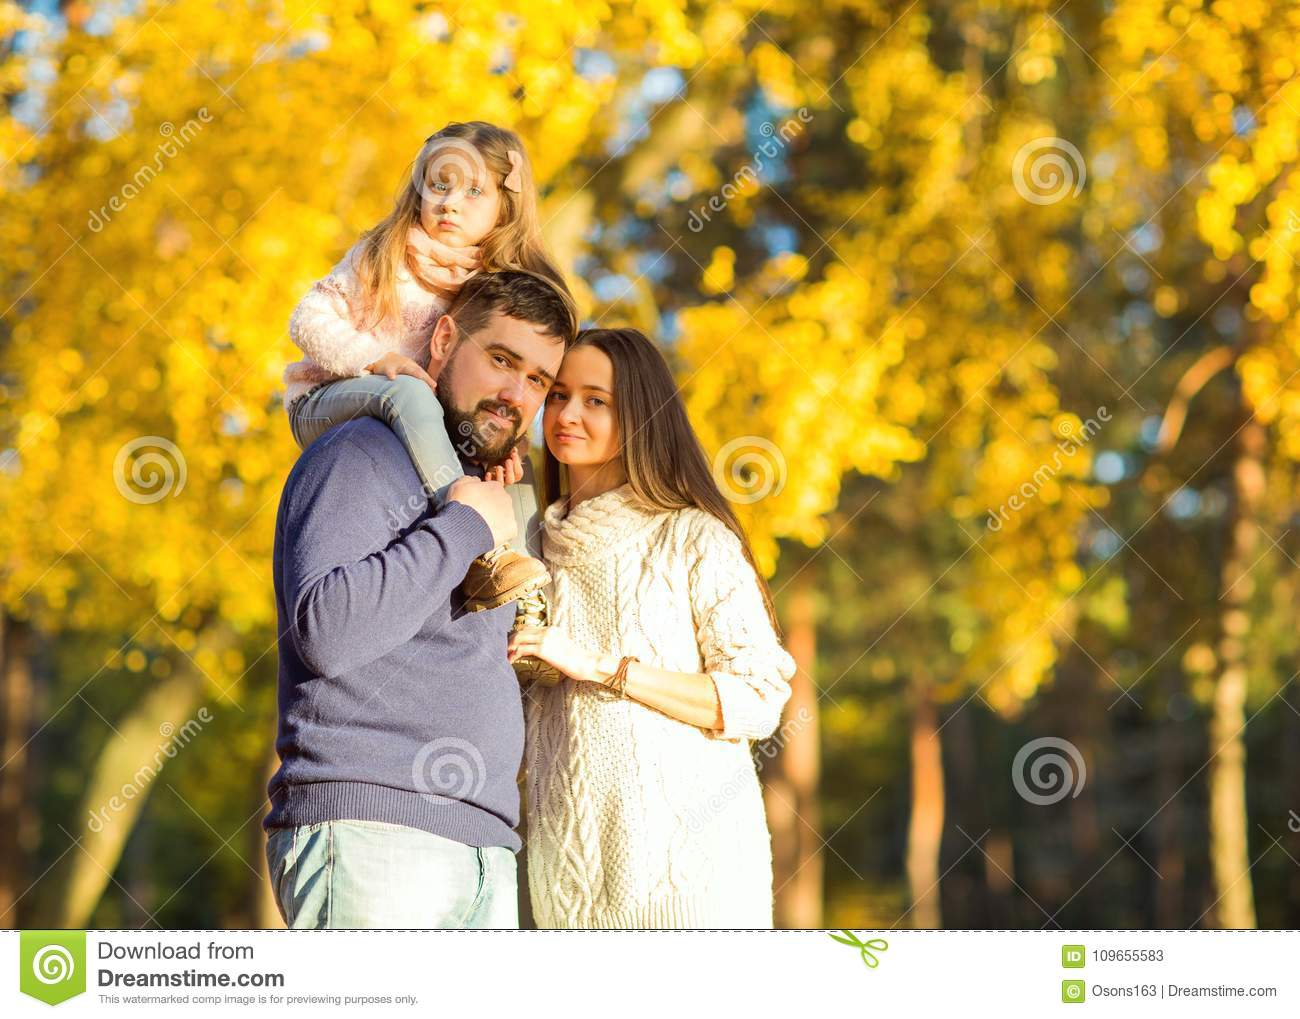 Mom and dad with daughter at sunset in the woods play